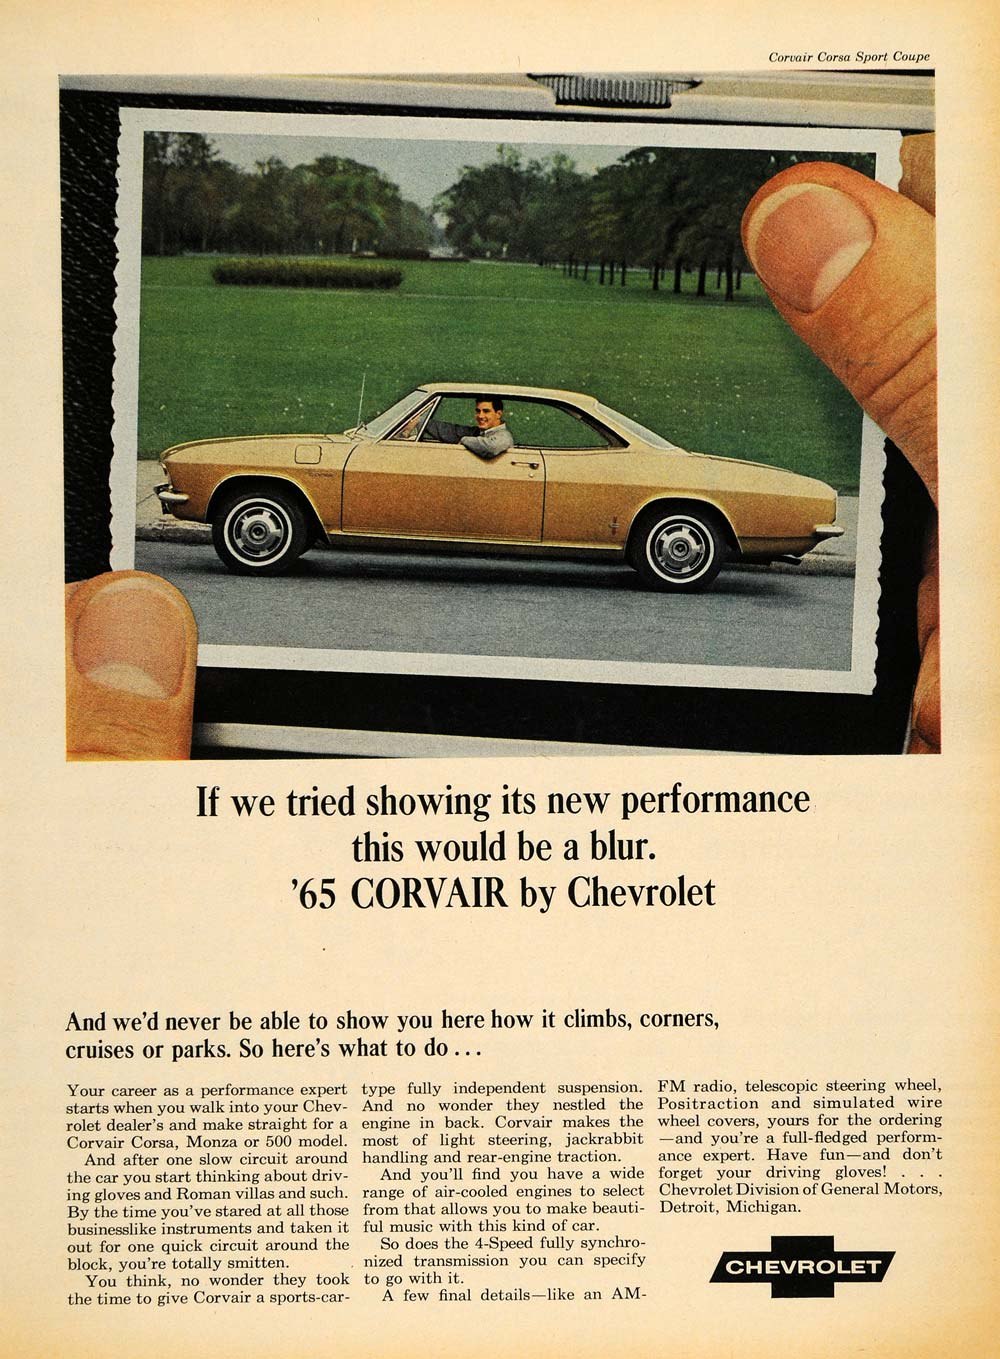 Delightful 1965 Ad Vintage Chevrolet Corvair Corsa Sport Coupe   ORIGINAL ADVERTISING  TM7